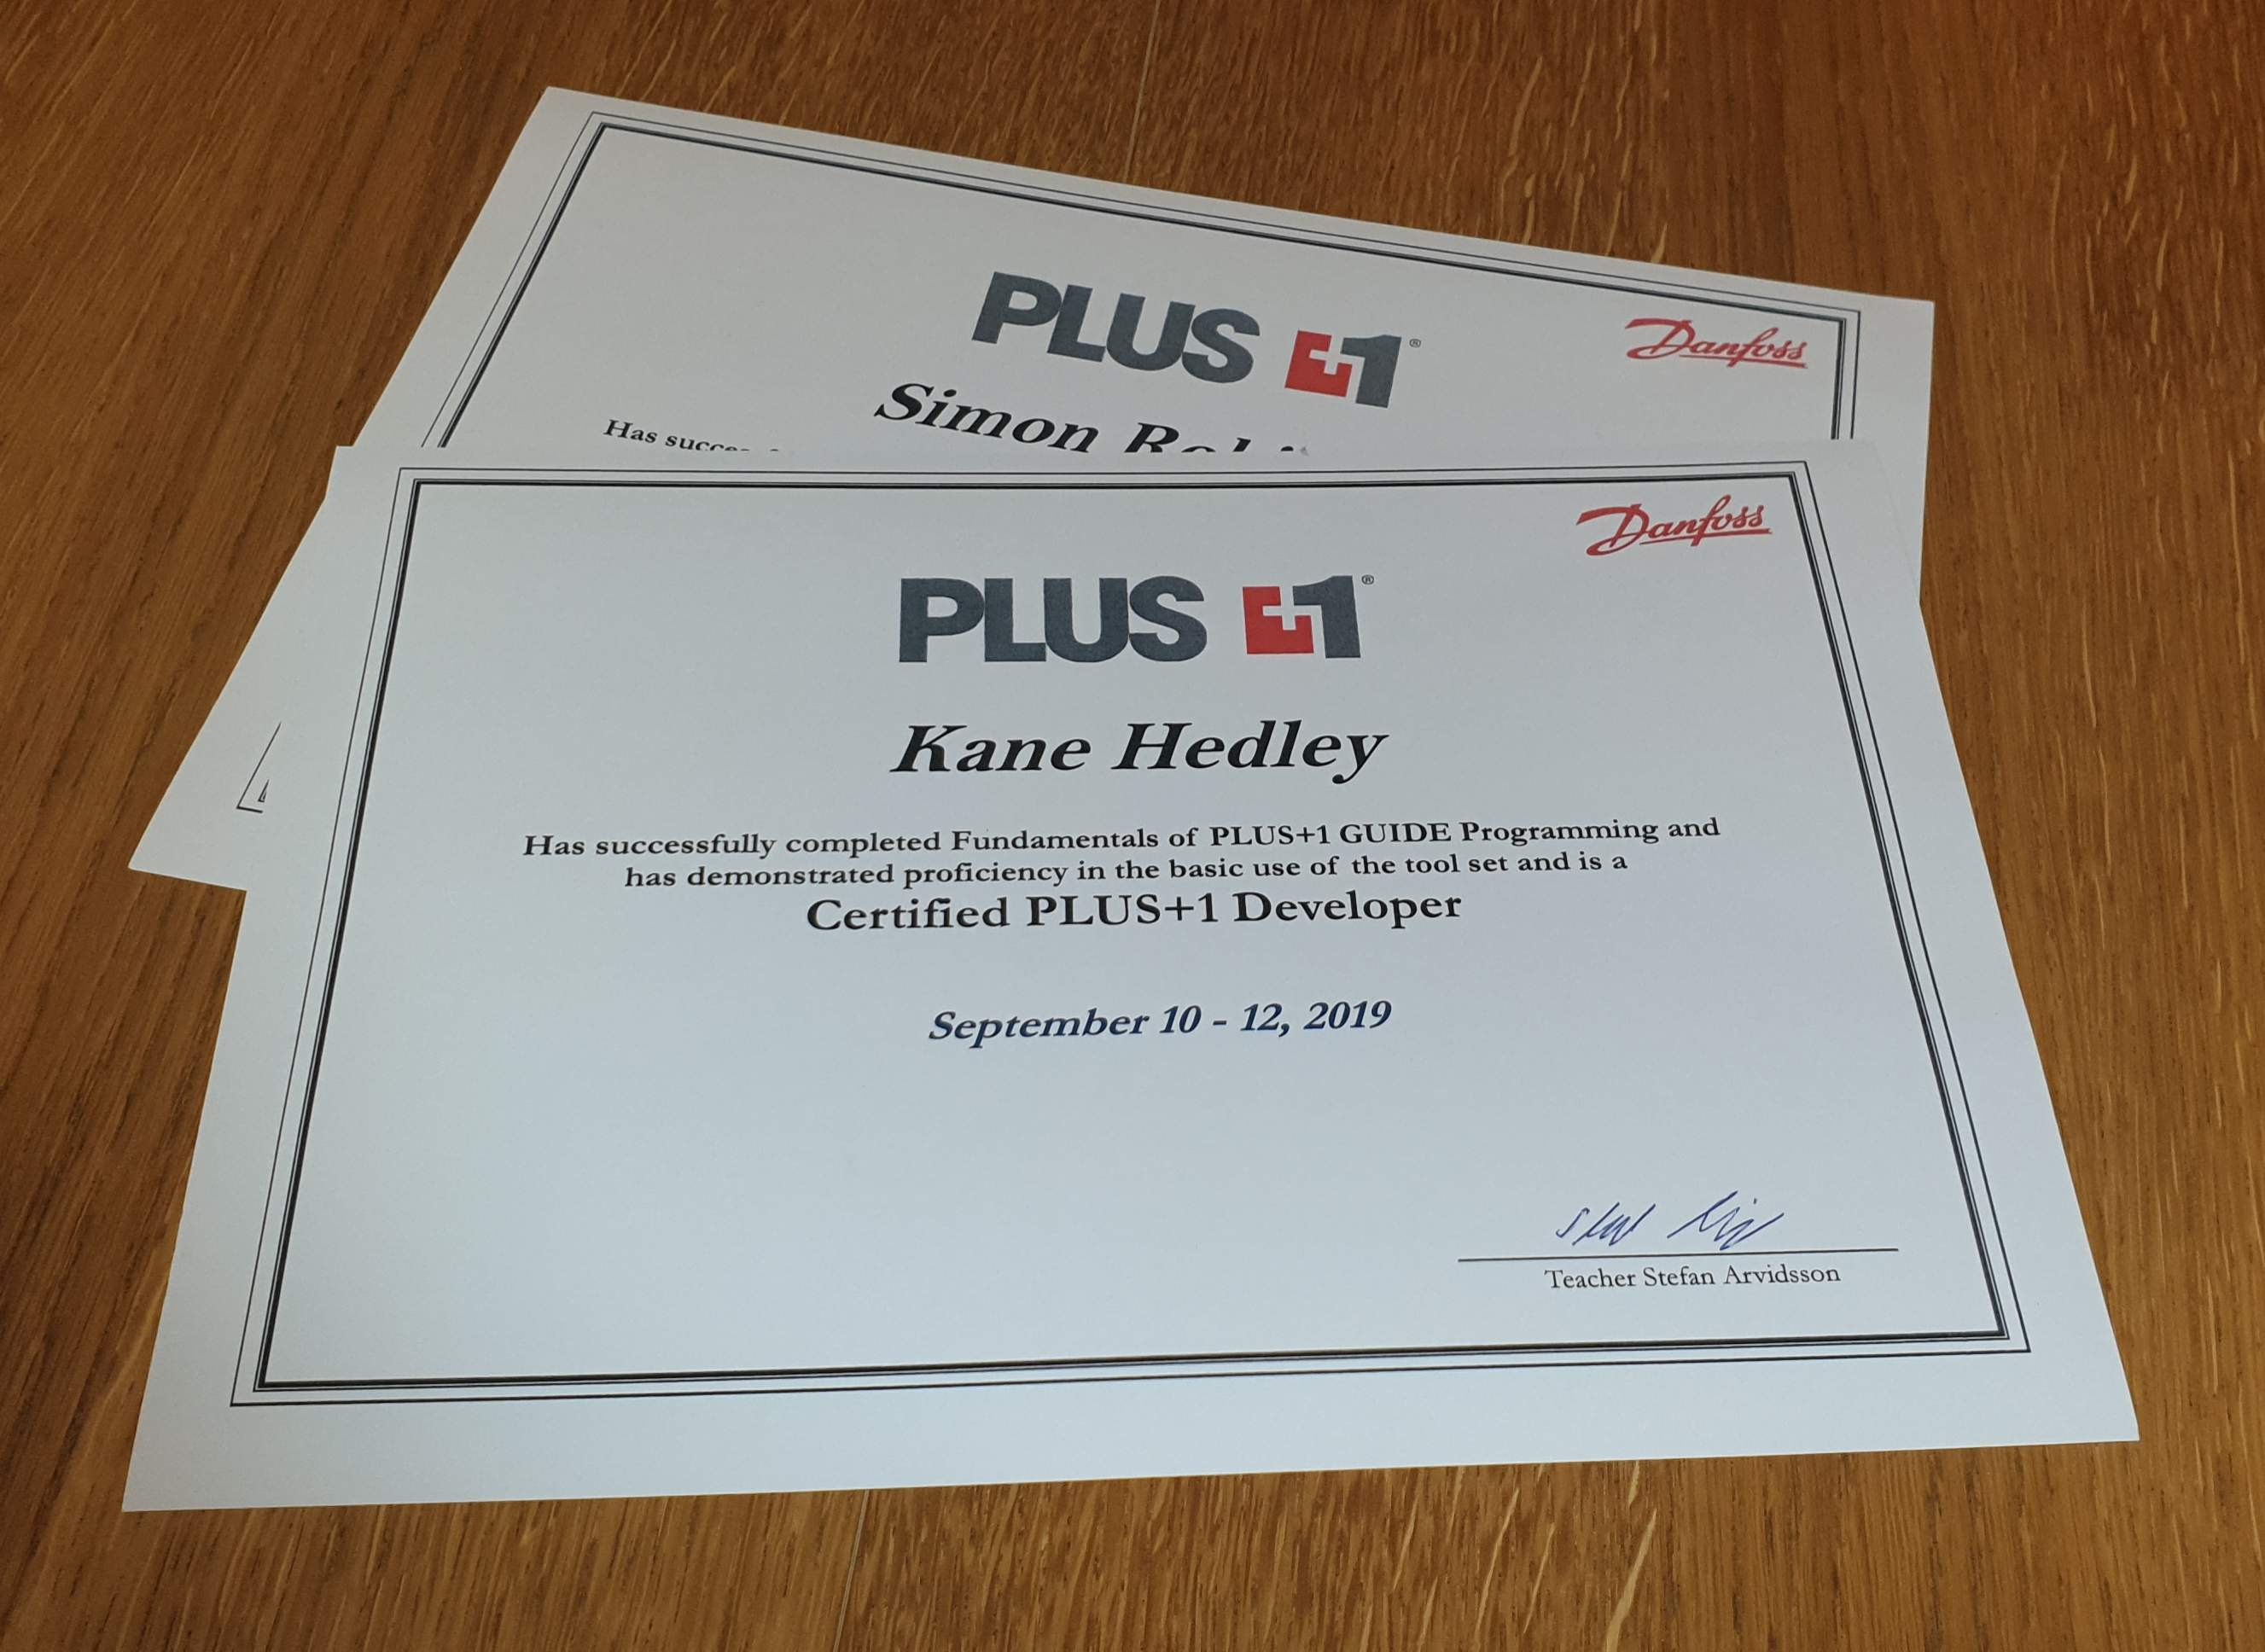 Danfoss Plus 1 Certification